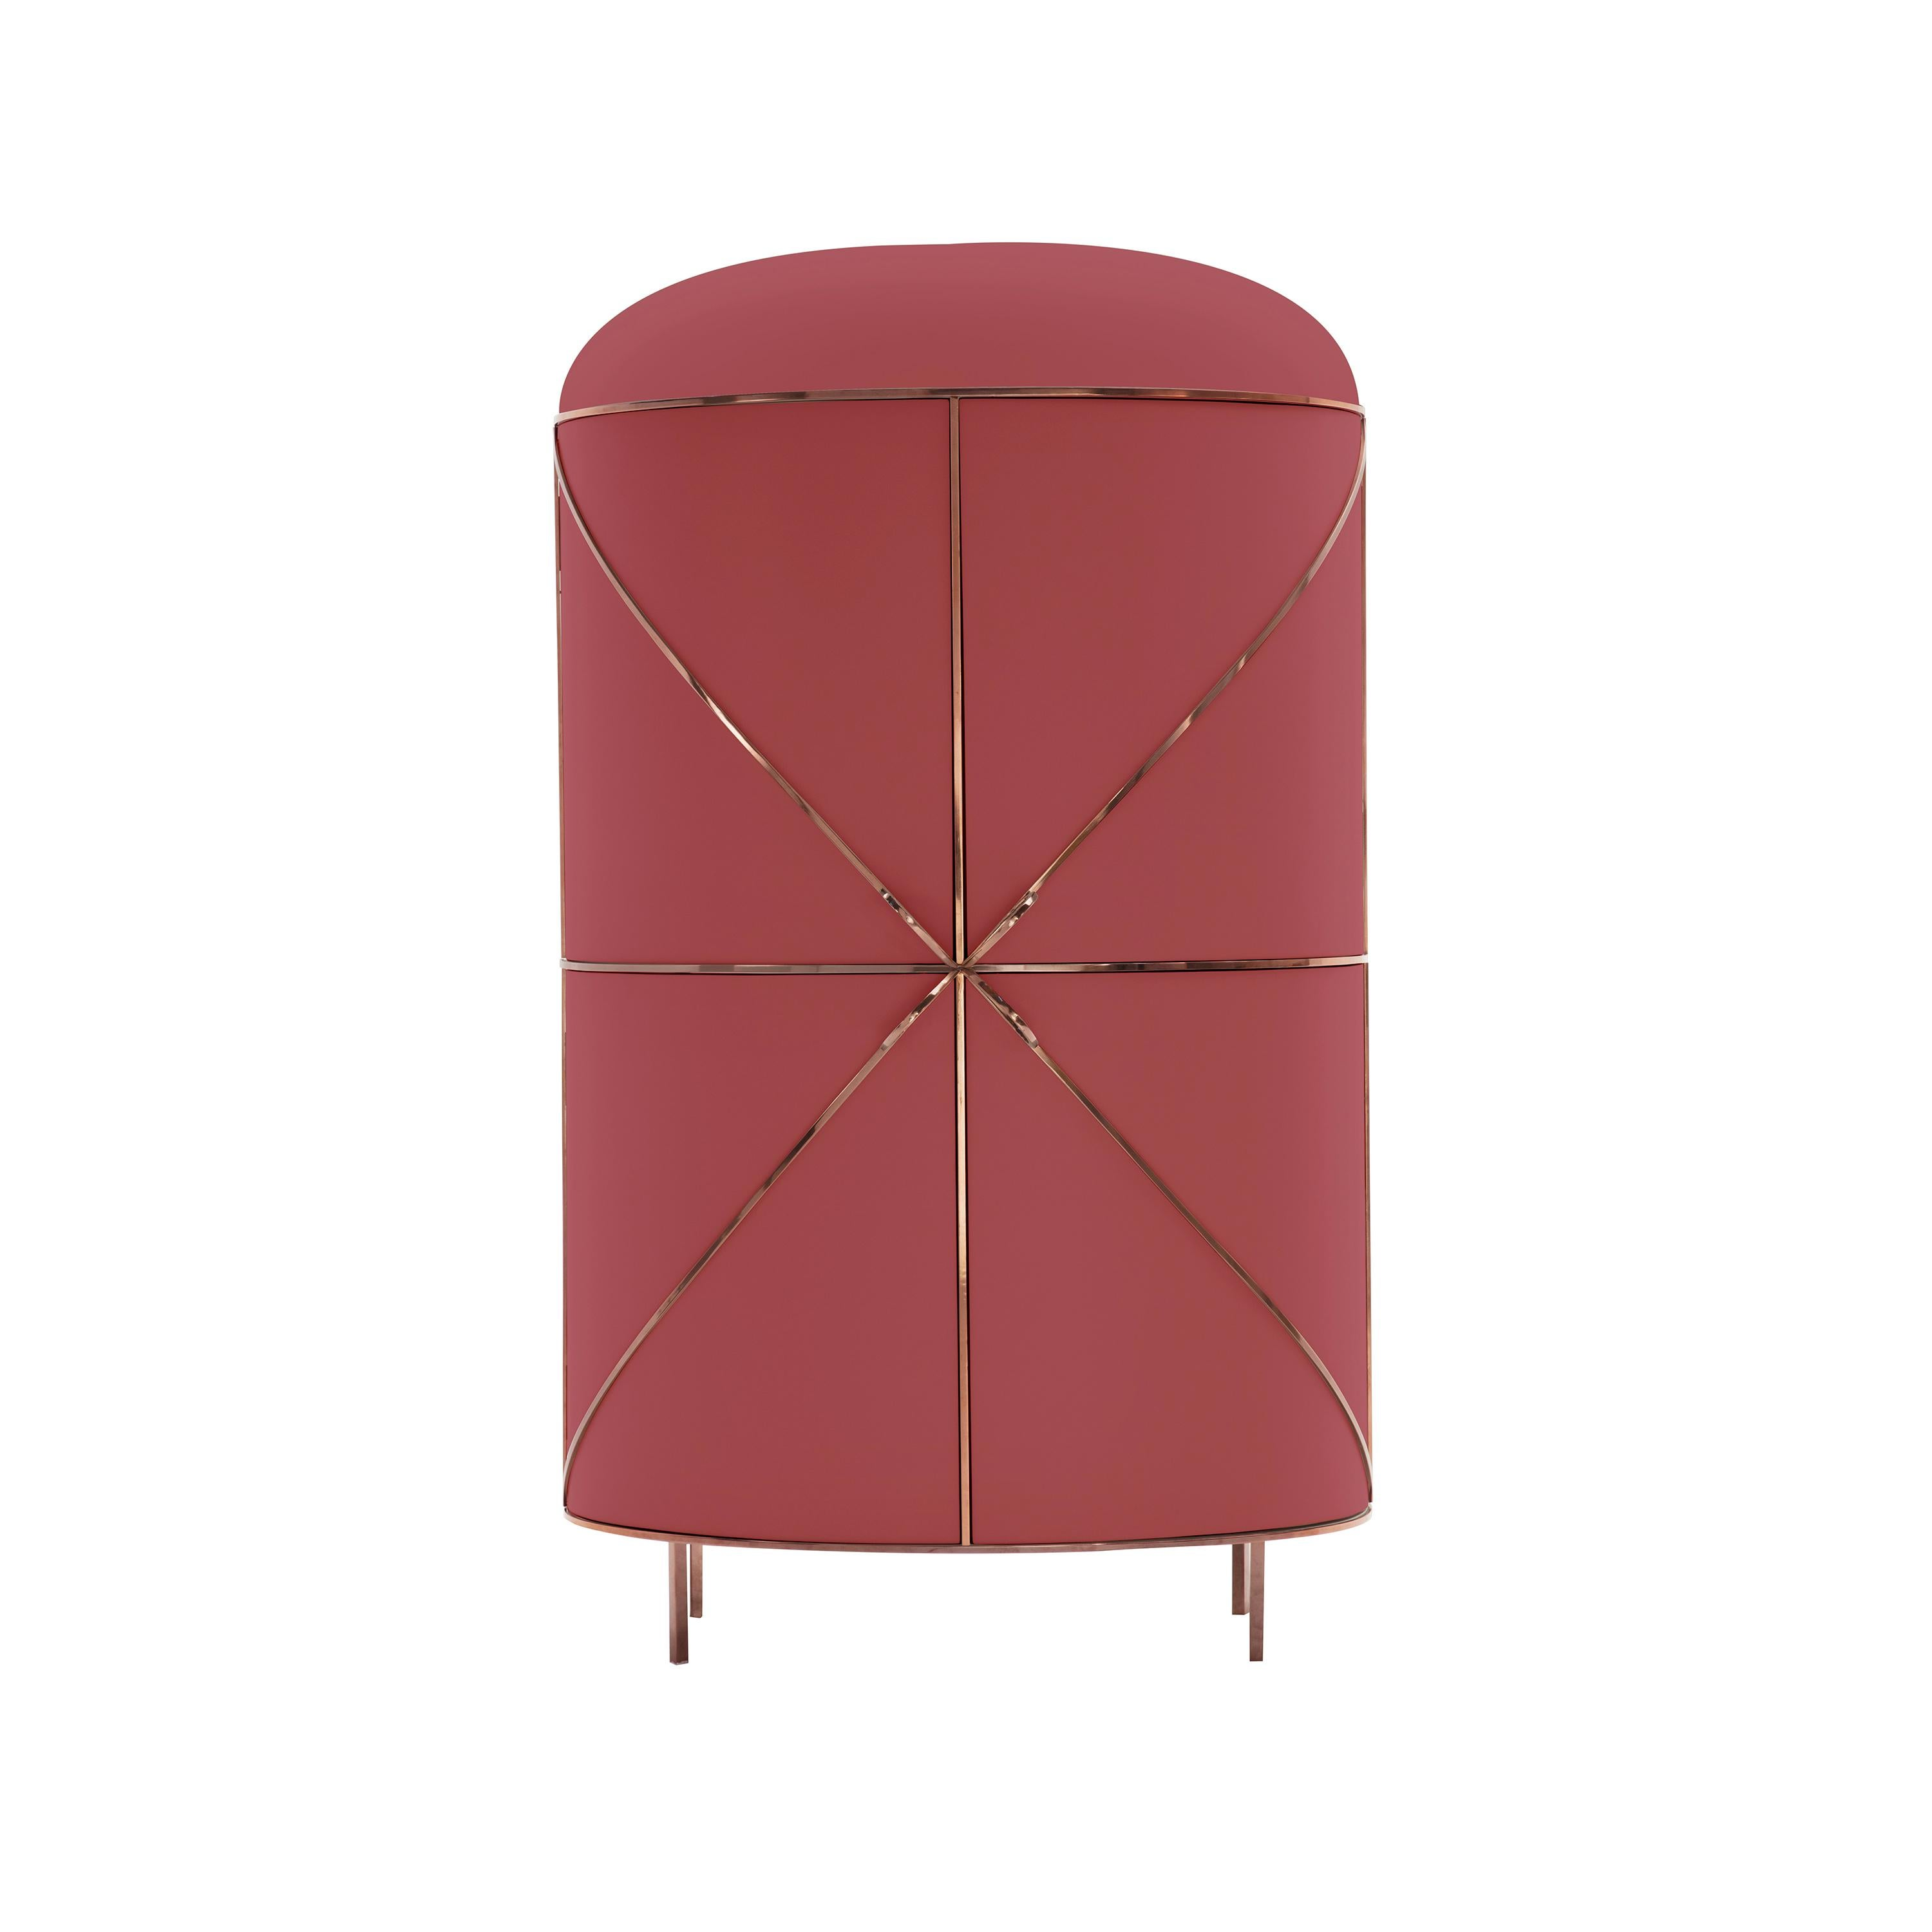 88 Secrets Rose Pink Bar Cabinet with Rose Gold Trims by Nika Zupanc